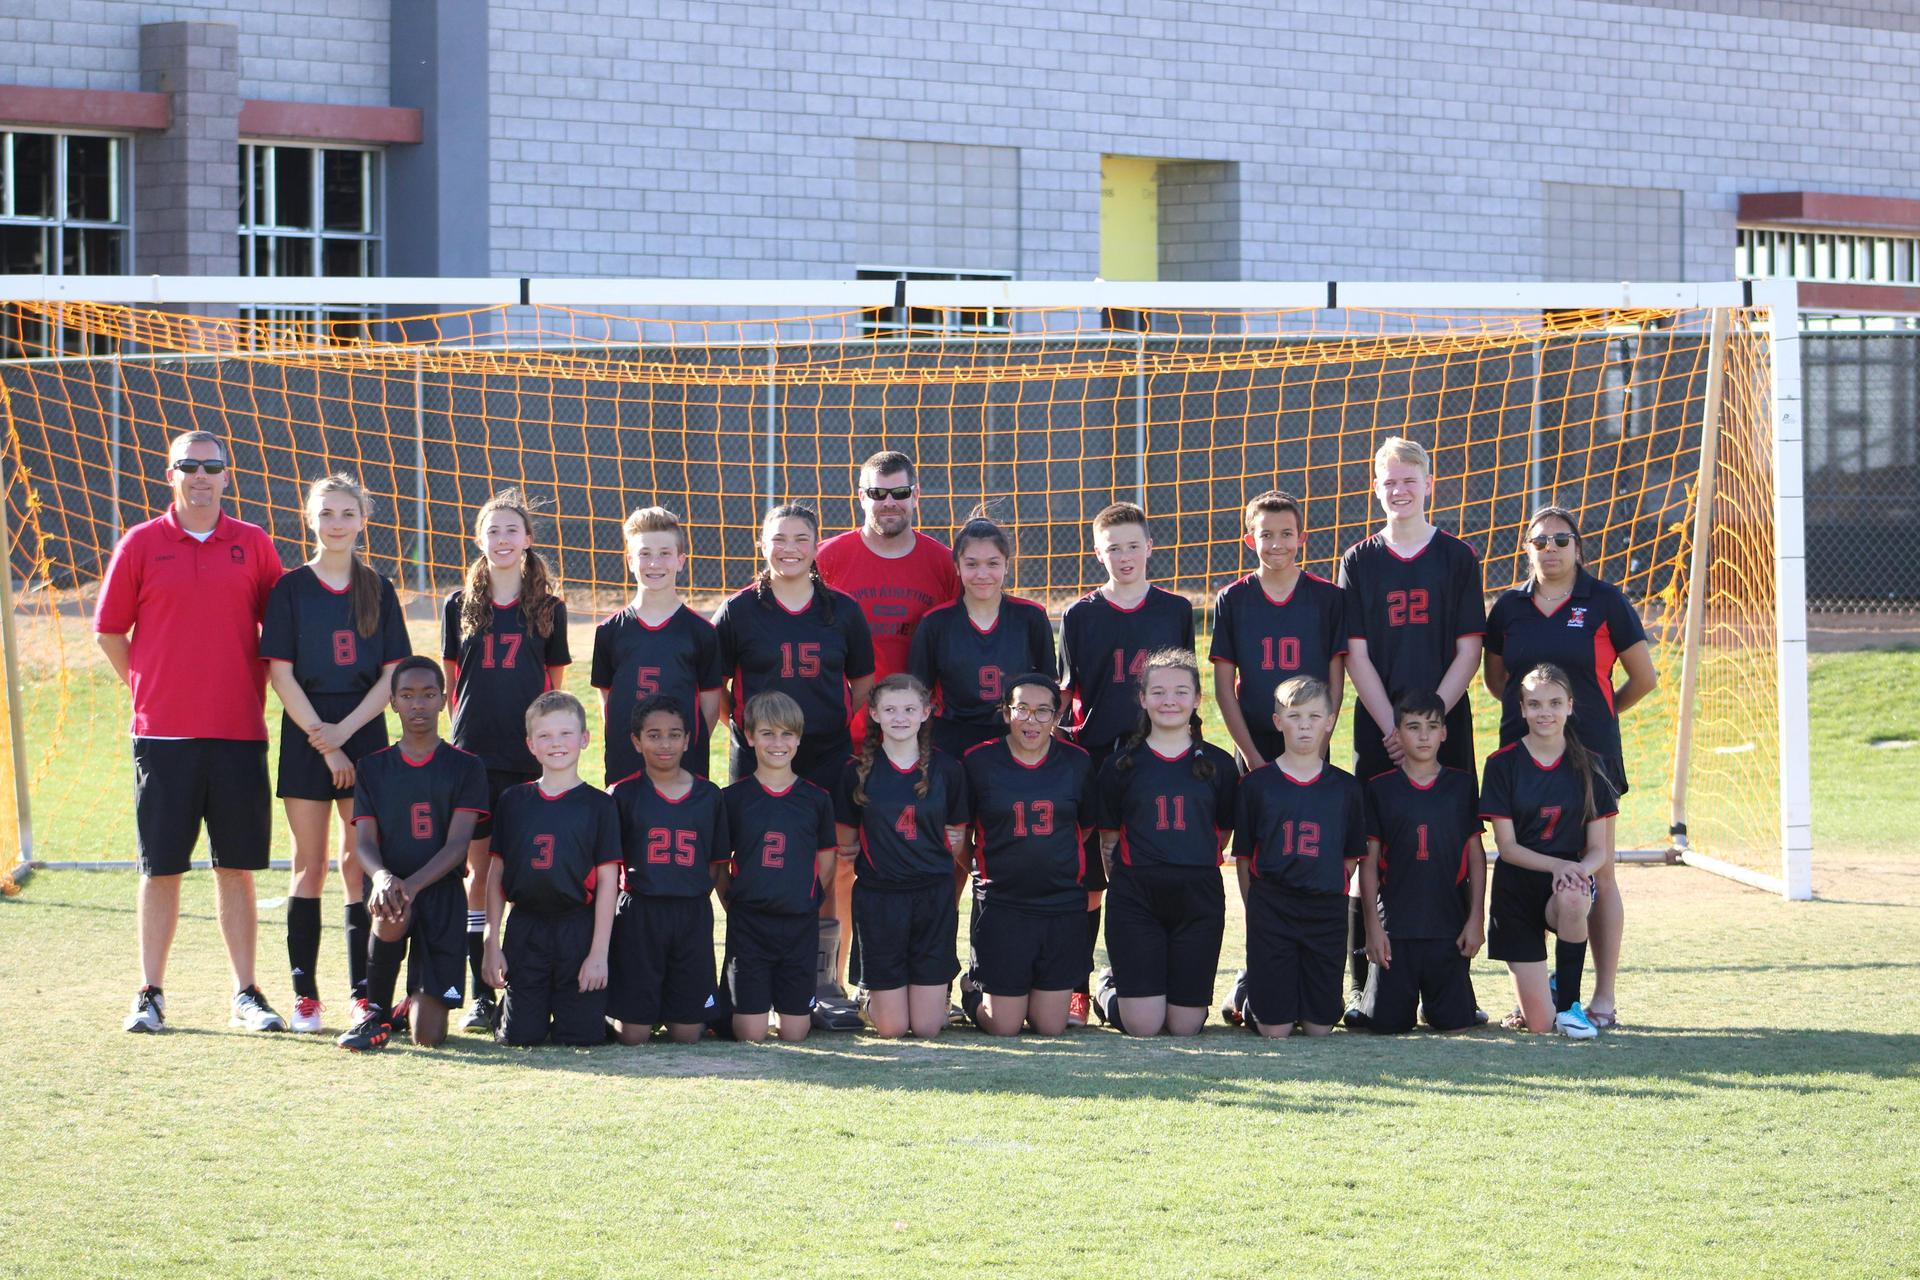 2018 Vipers Soccer